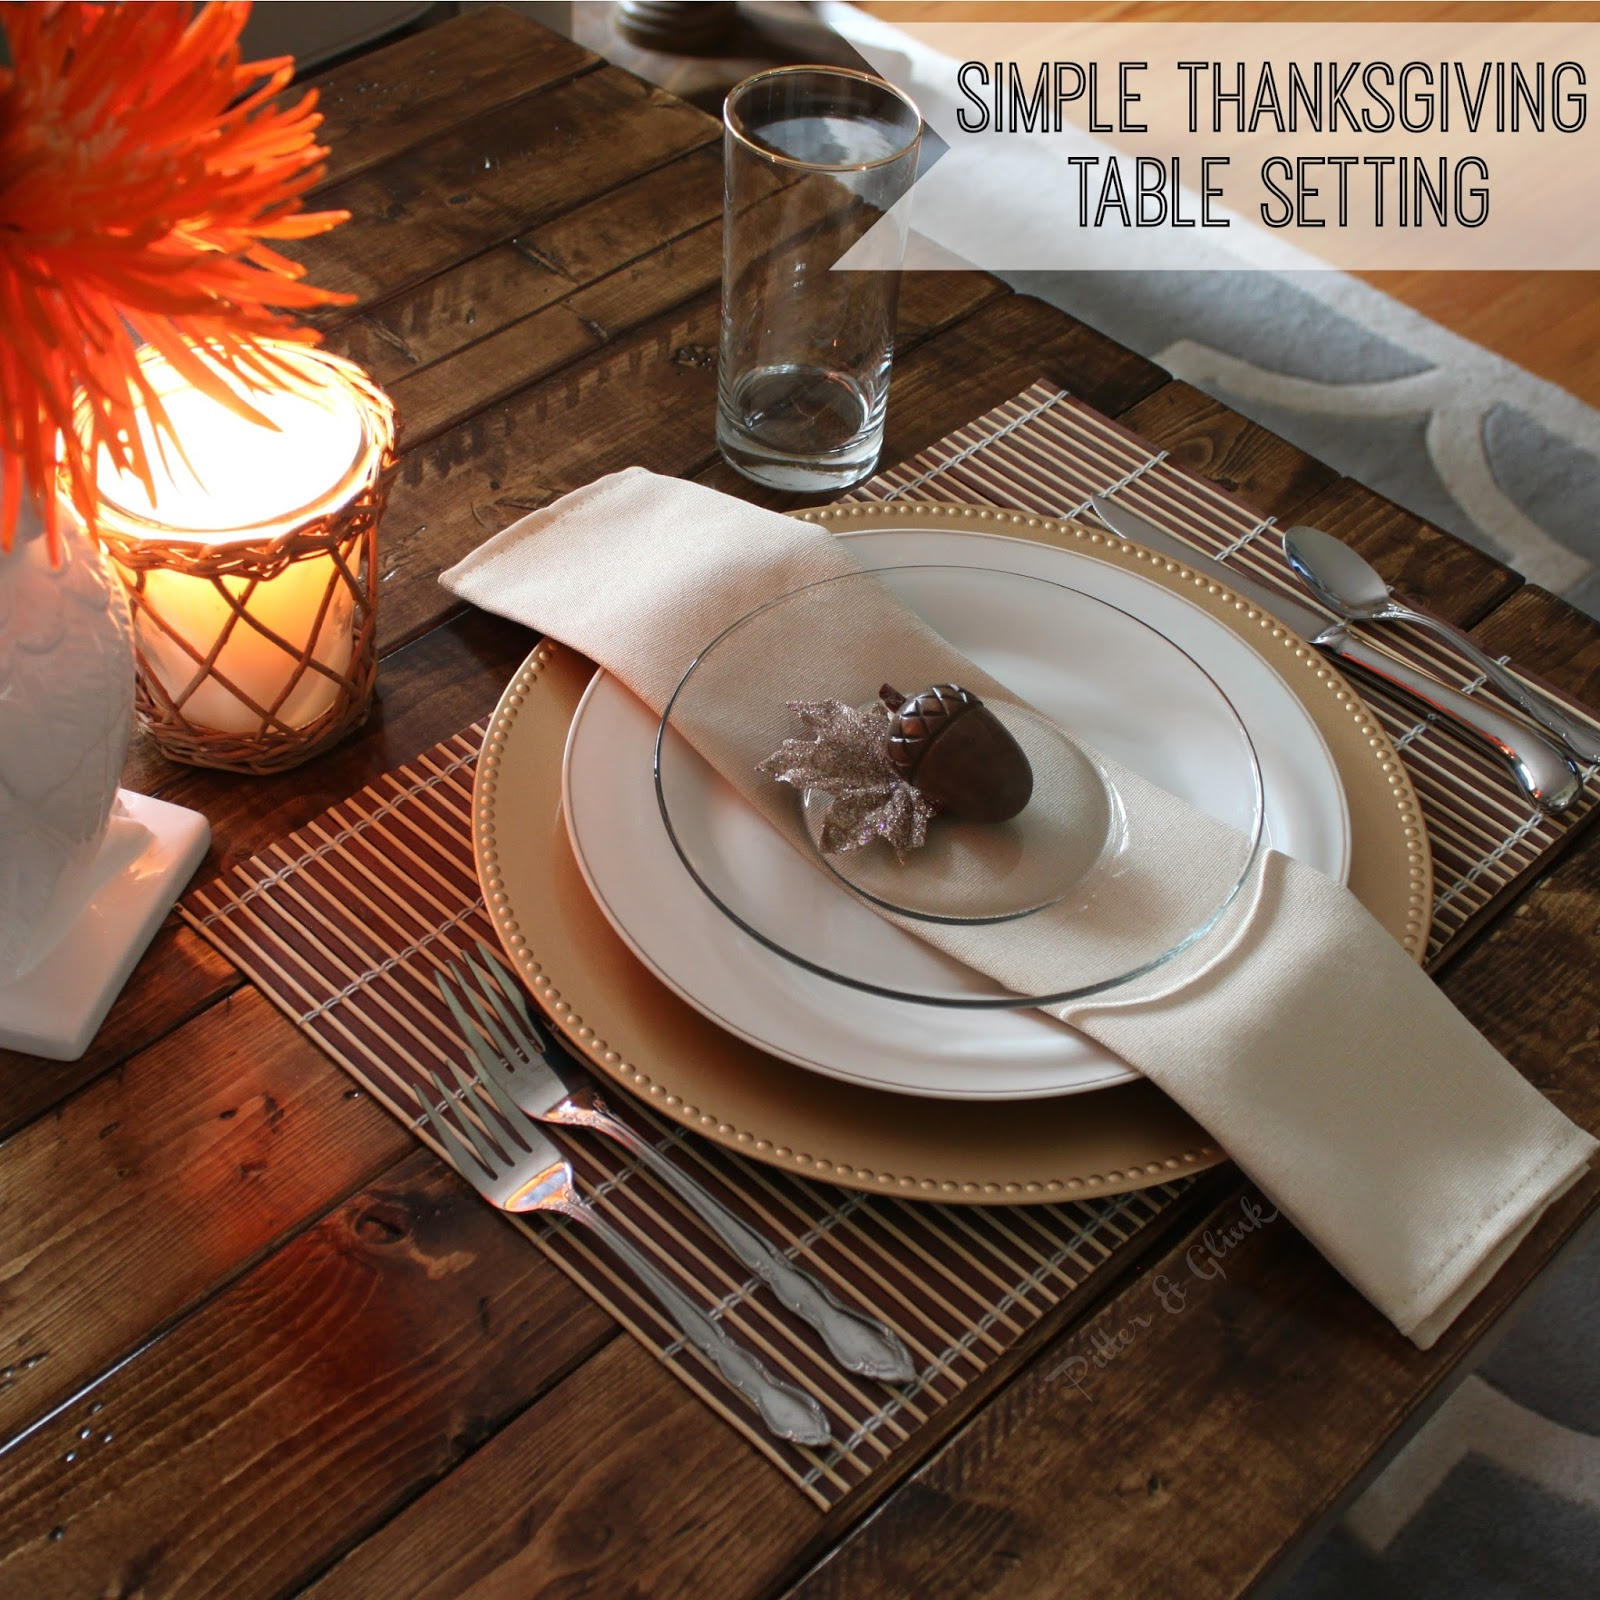 A Simple Inexpensive \u0026 Elegant Thanksgiving Table Setting pitterandglink.com : inexpensive dinnerware - pezcame.com